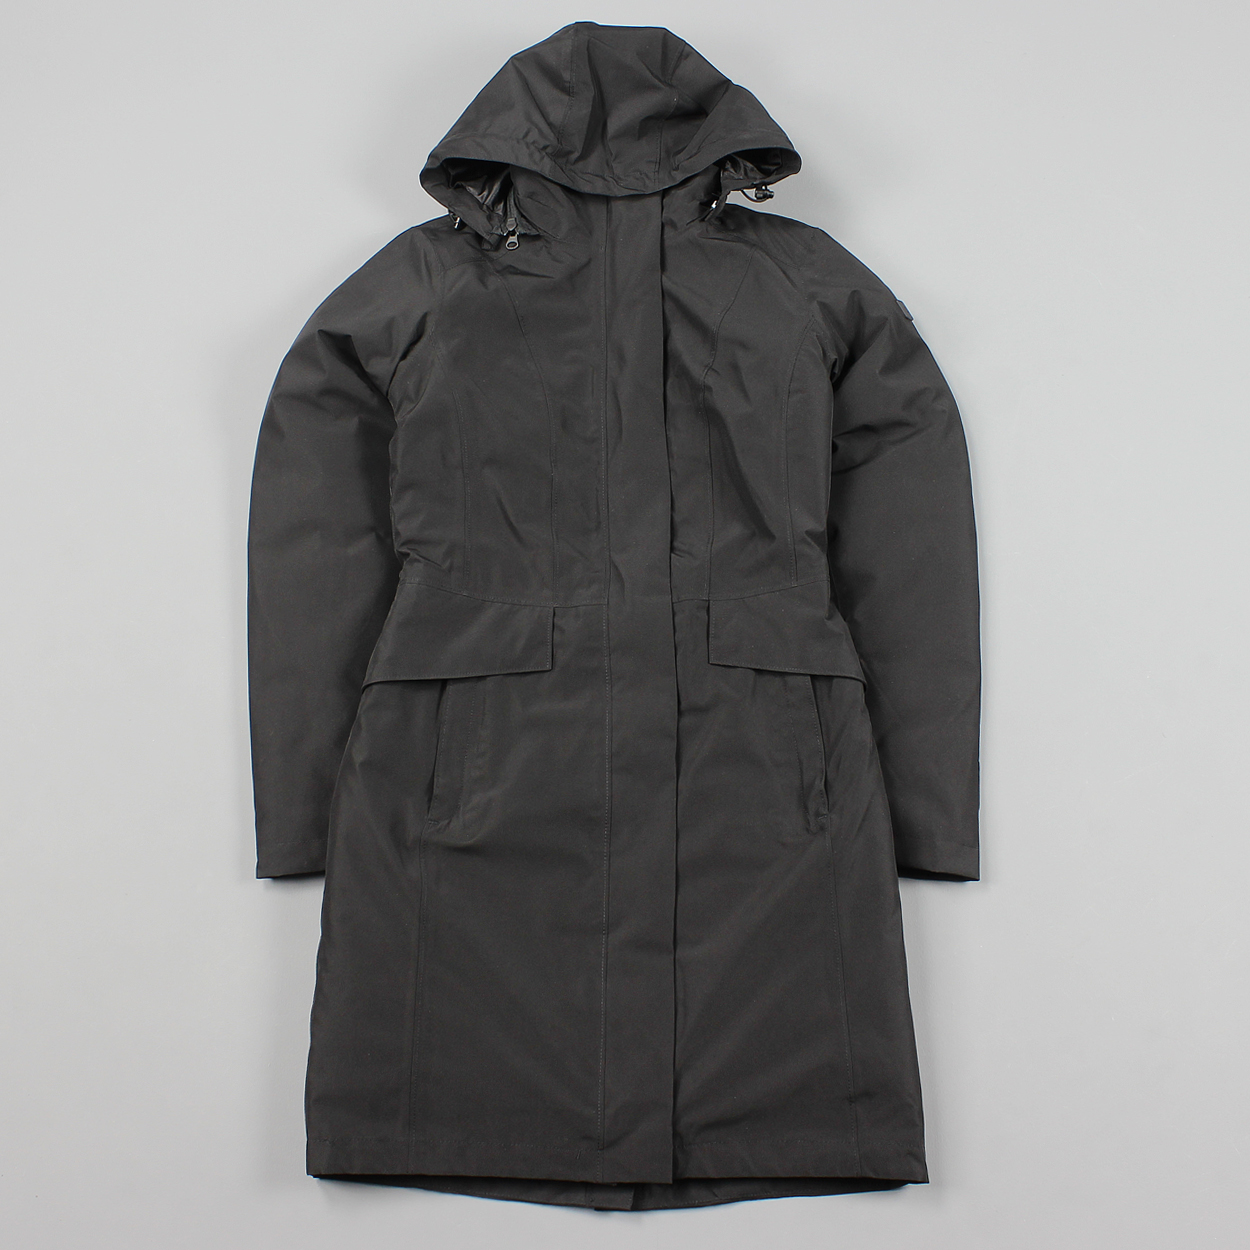 Winter 1 North In Coat Triclimate Womens Face Suzanne Black The 3 6vqSF